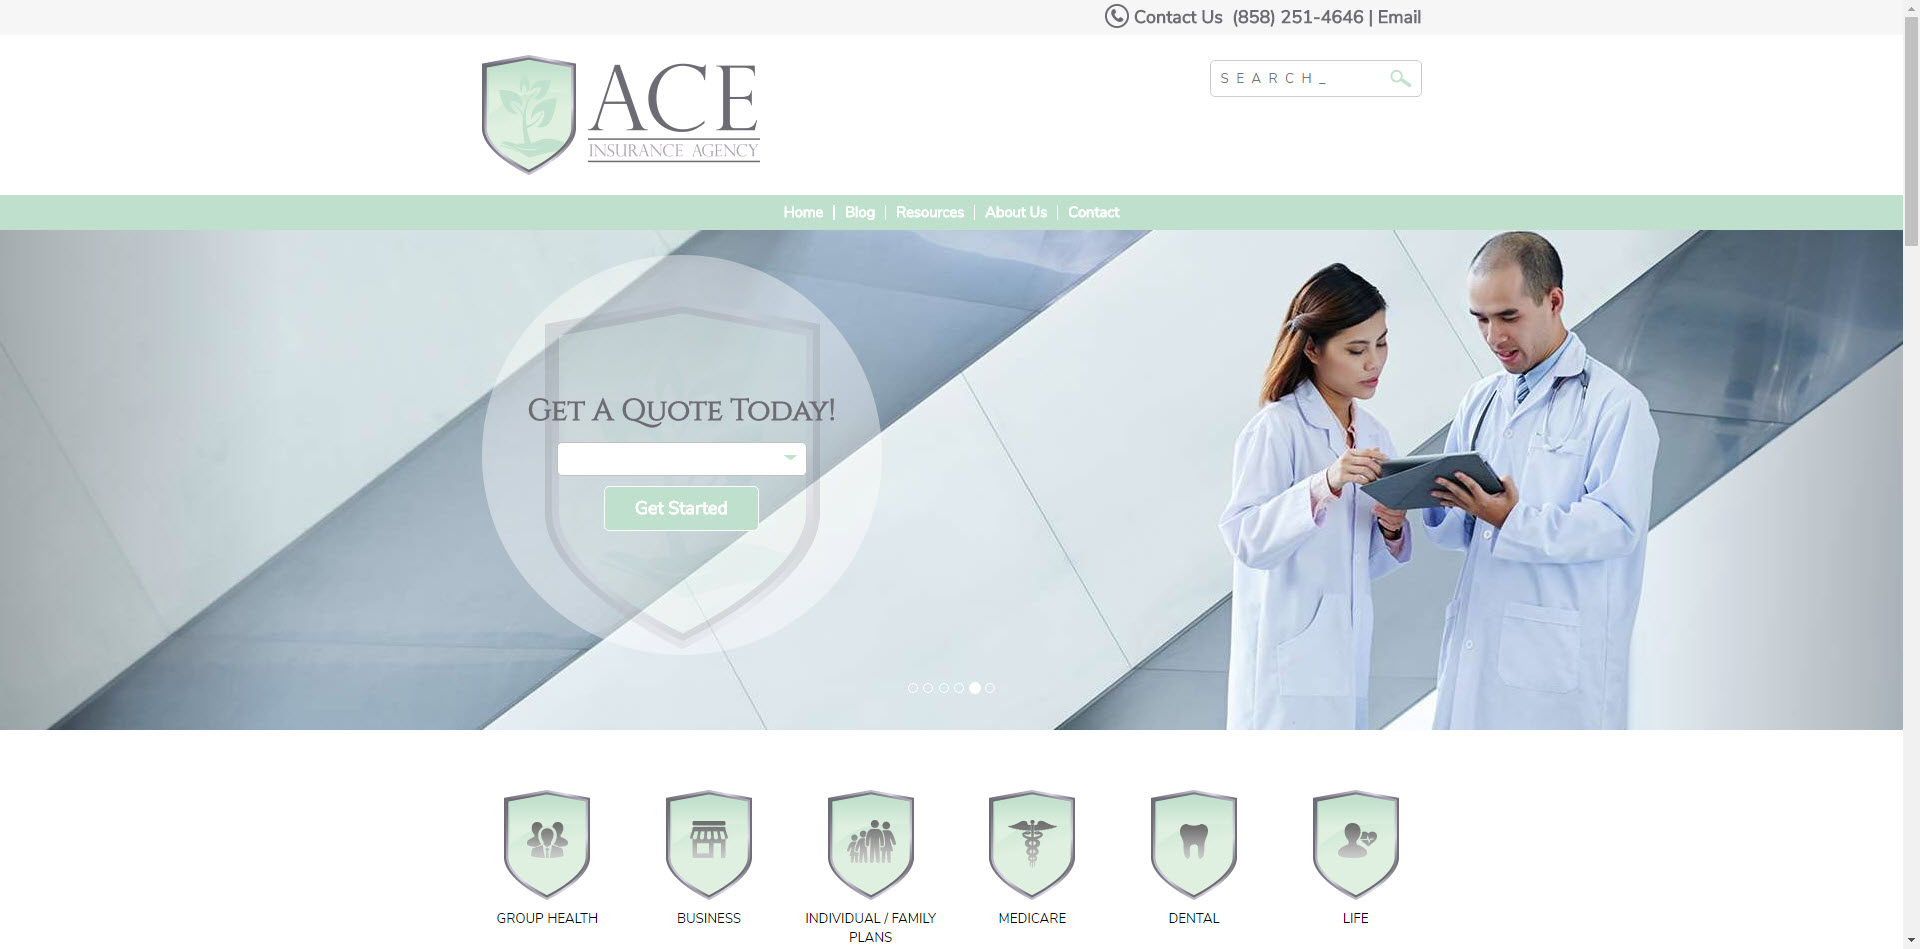 Ace Insurance agency screenshot